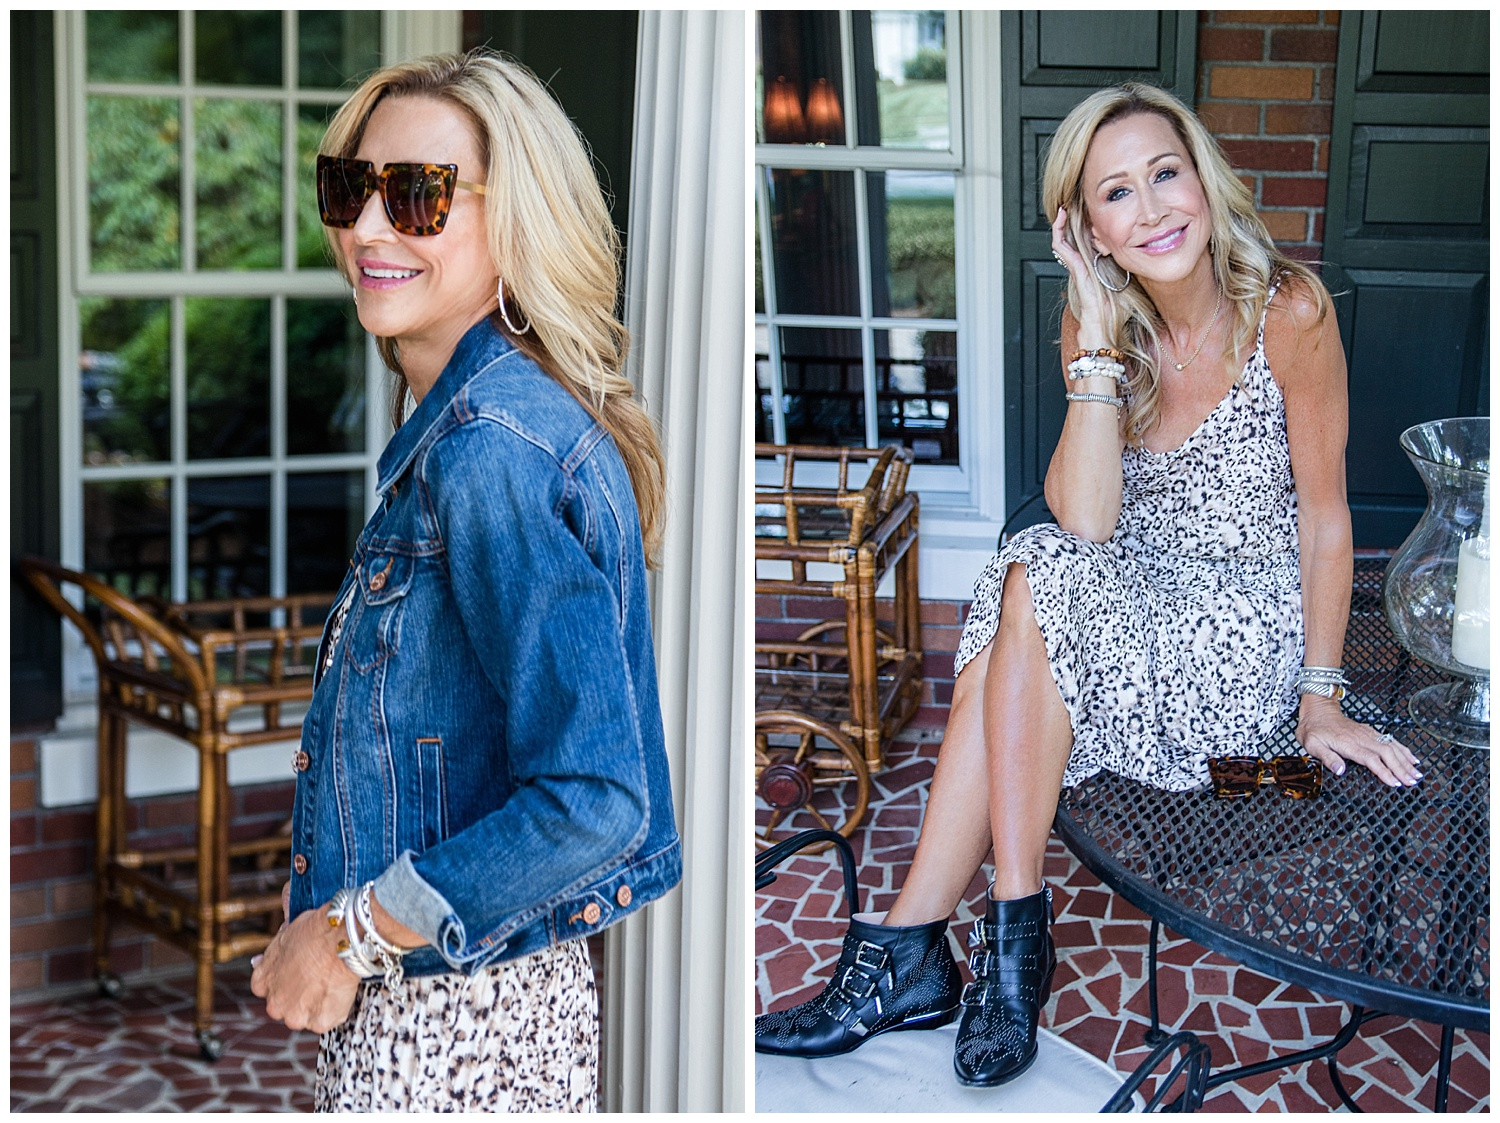 Blue Life leopard print dress with denim jacket and Chloé Susanna booties - Crazy Blonde Style